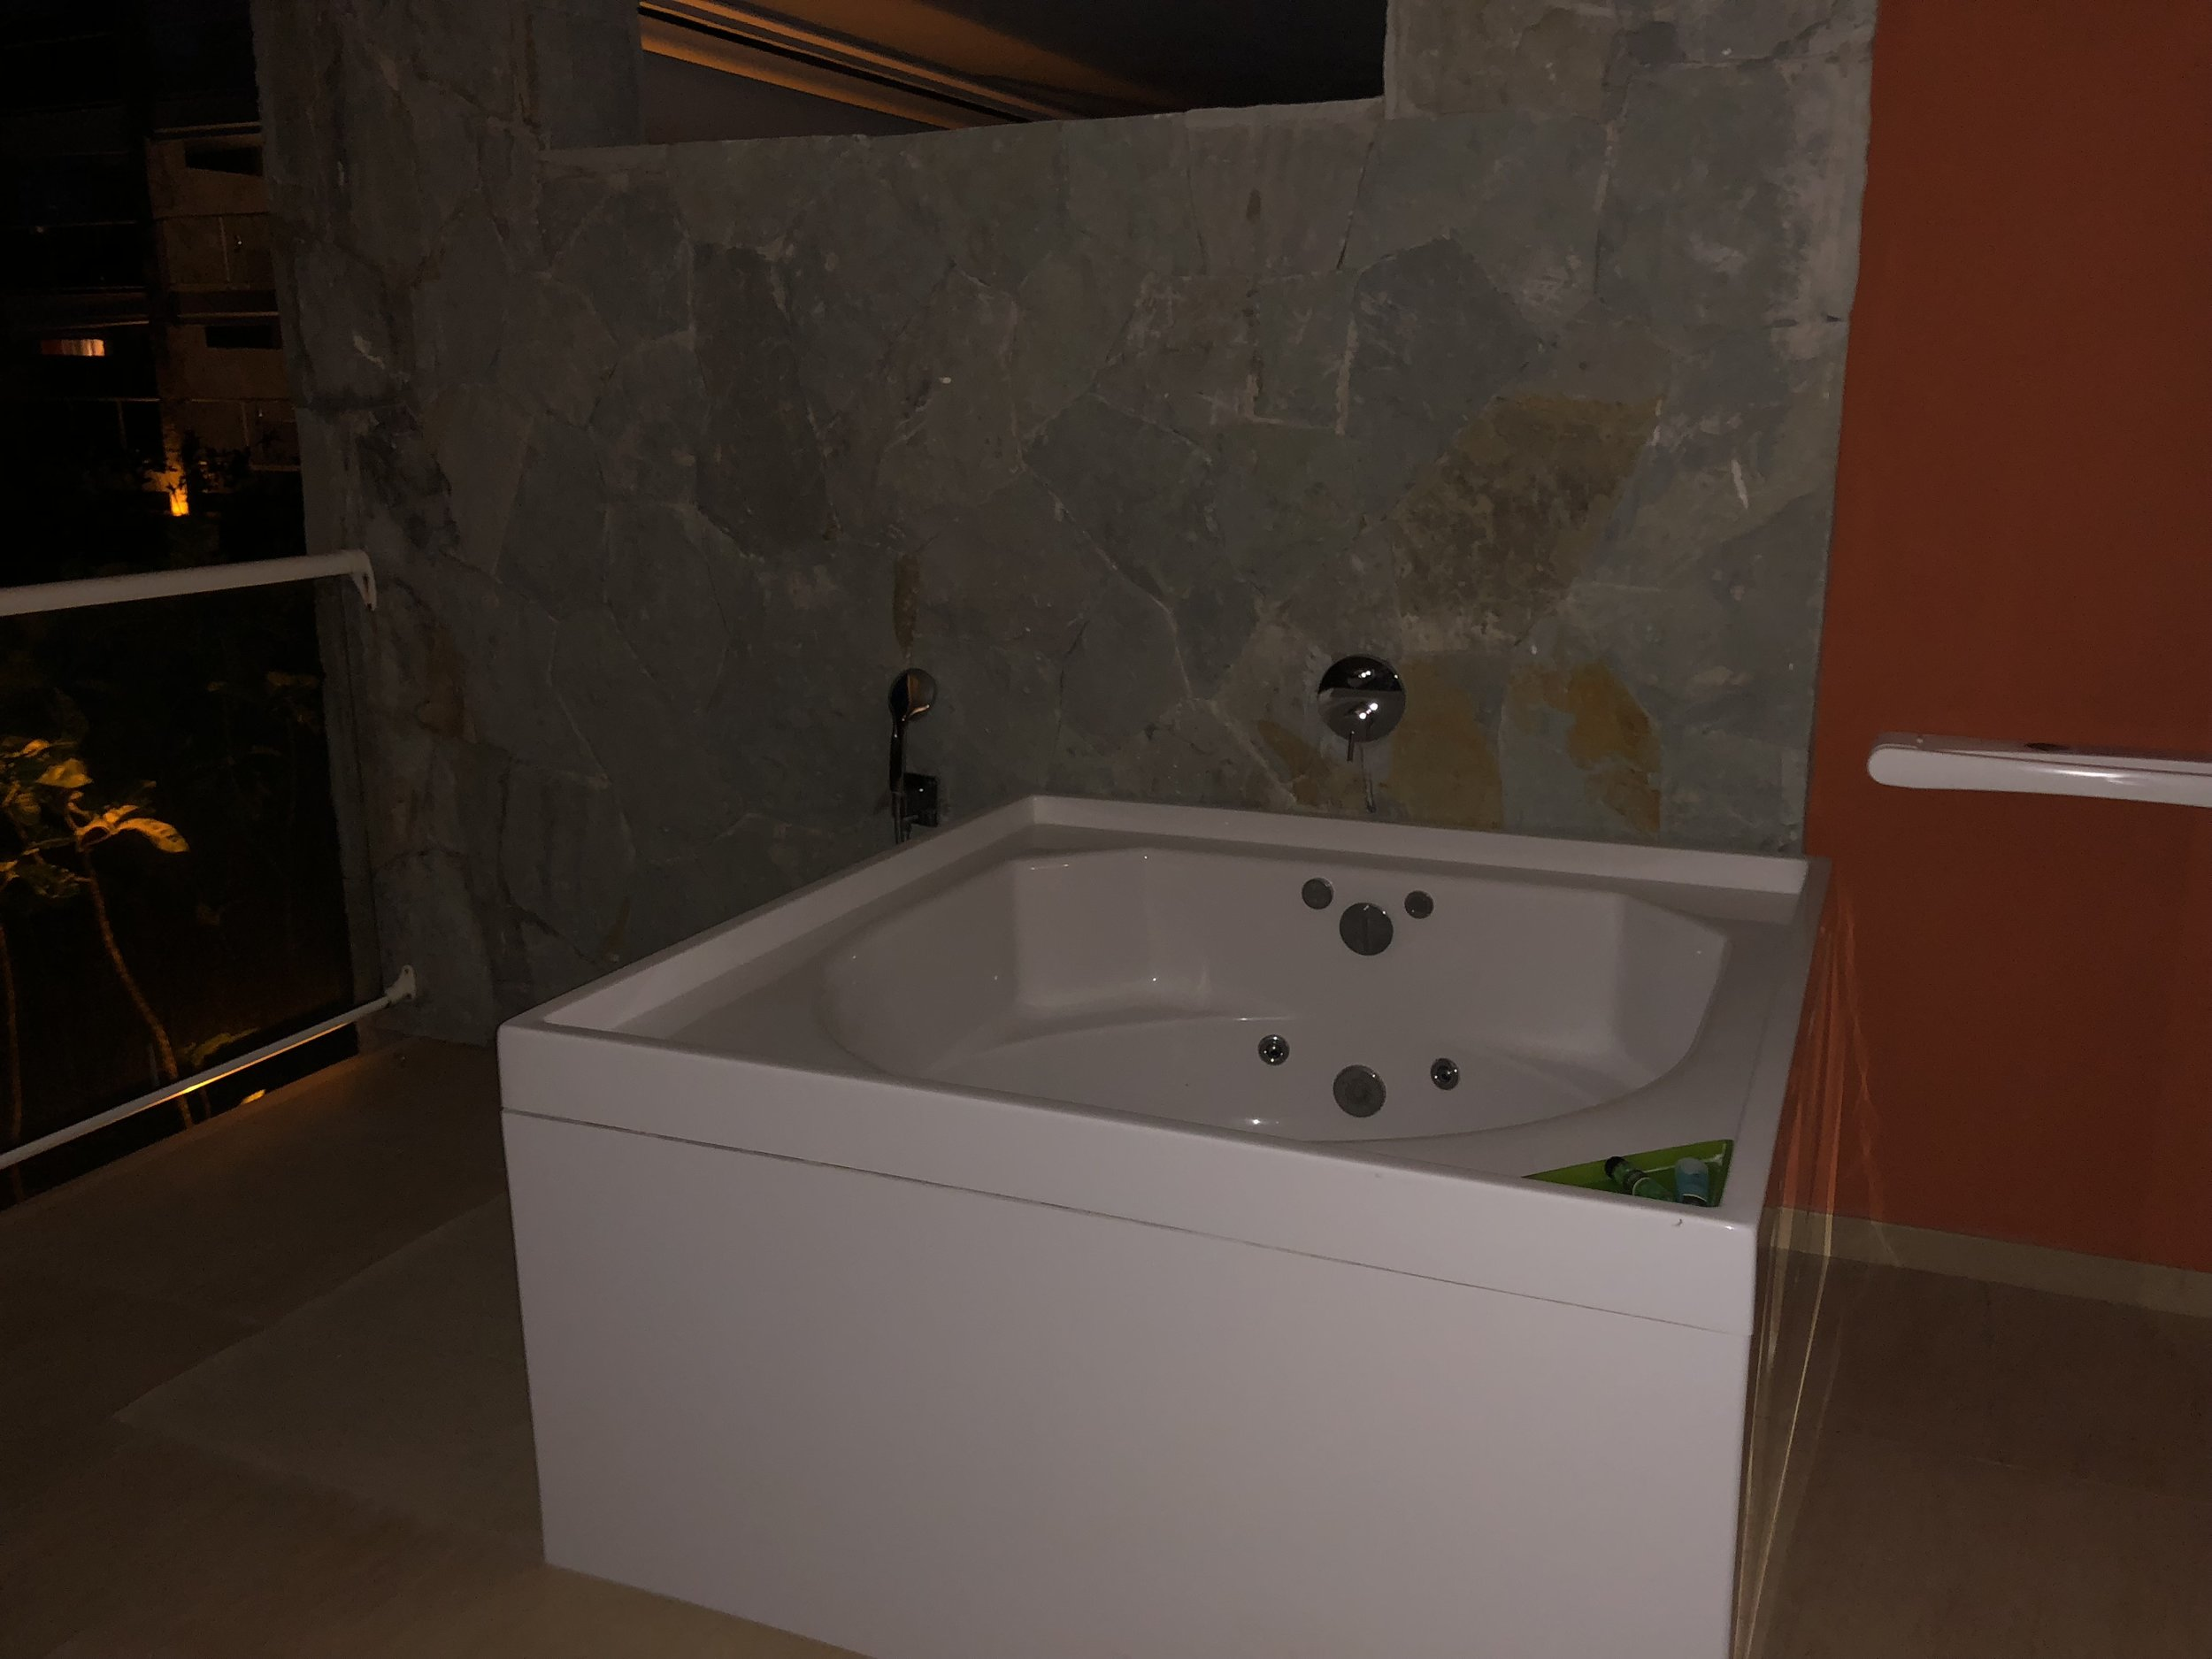 Jacuzzi is located on the balcony.